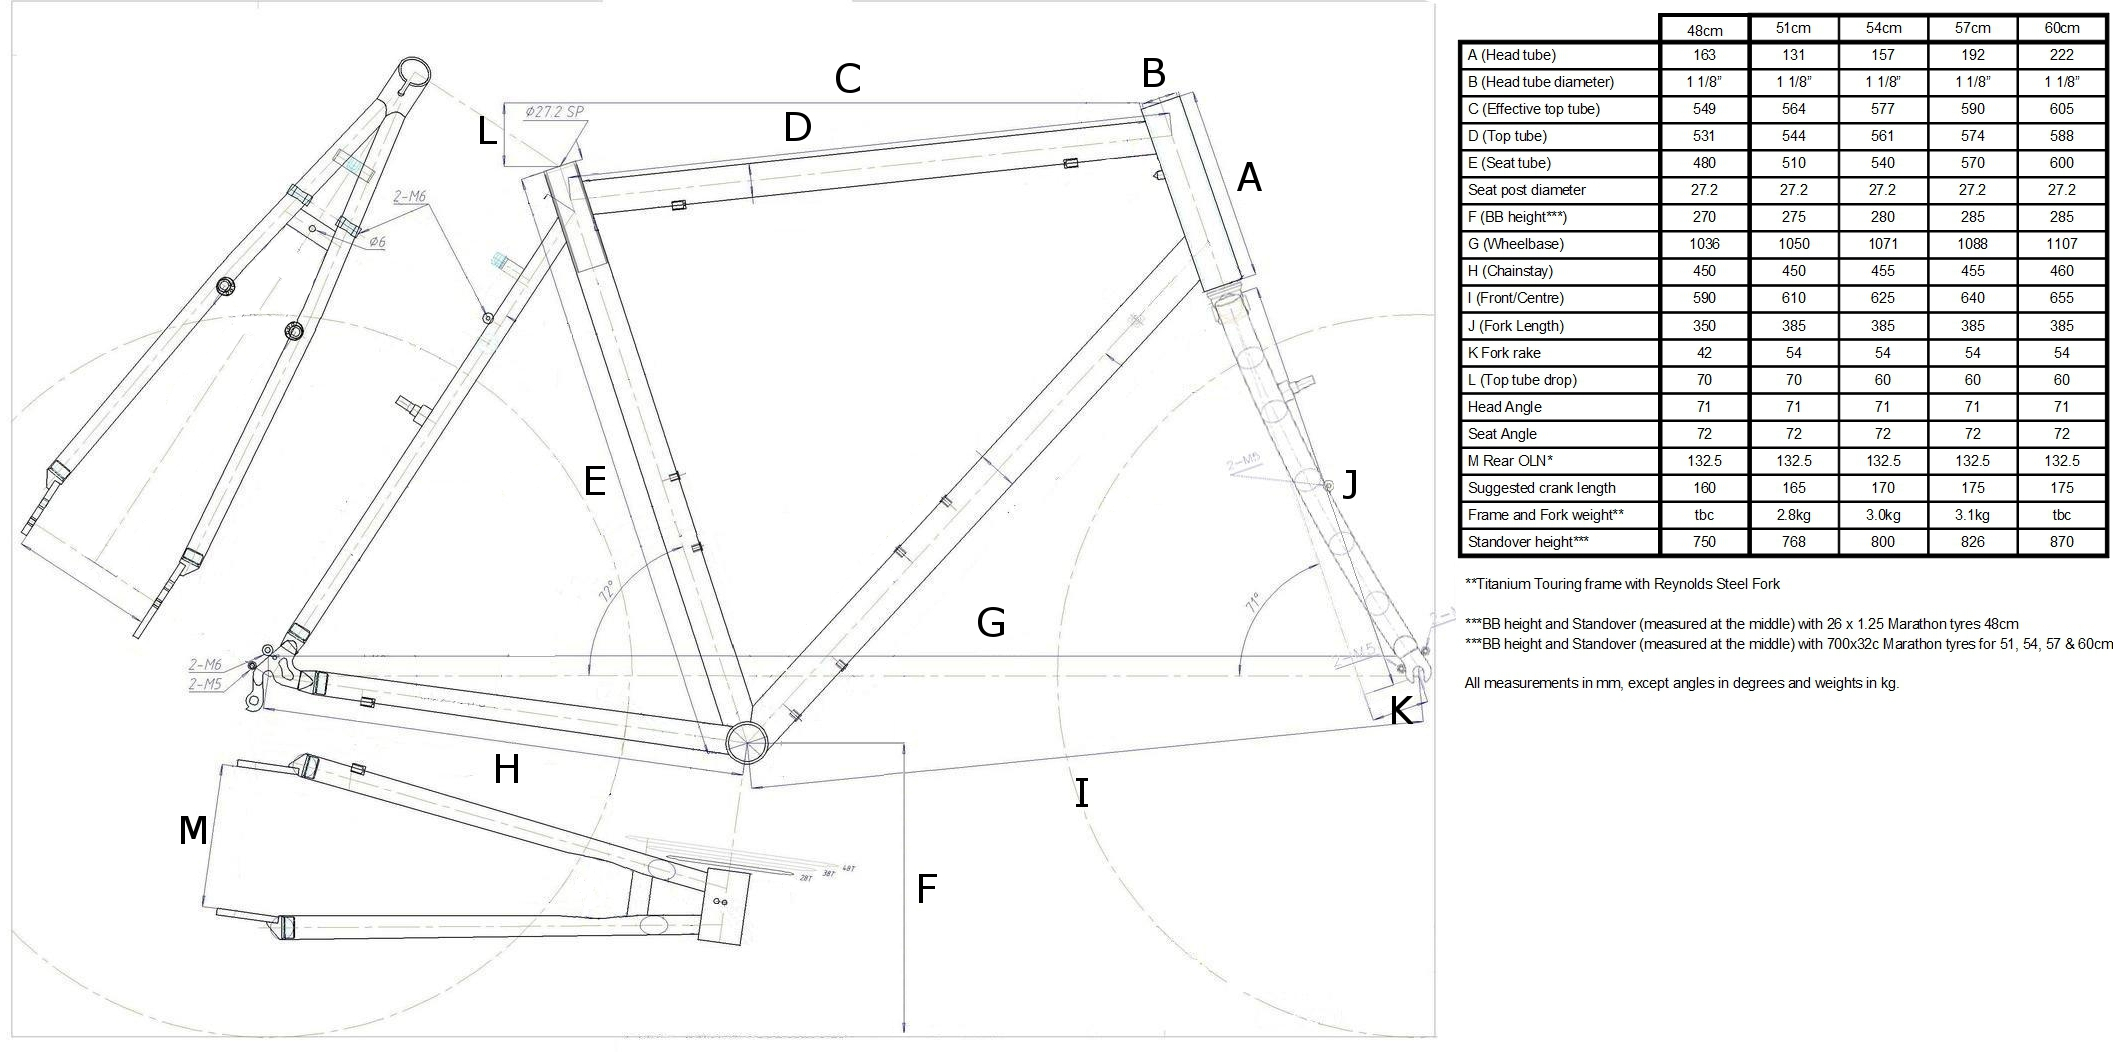 Spa Cycles Steel Tourer Frame And Forks 37500 Parts Bicycle Diagram The Of Is Click Here For Suggested Methods To Establish Correct Size